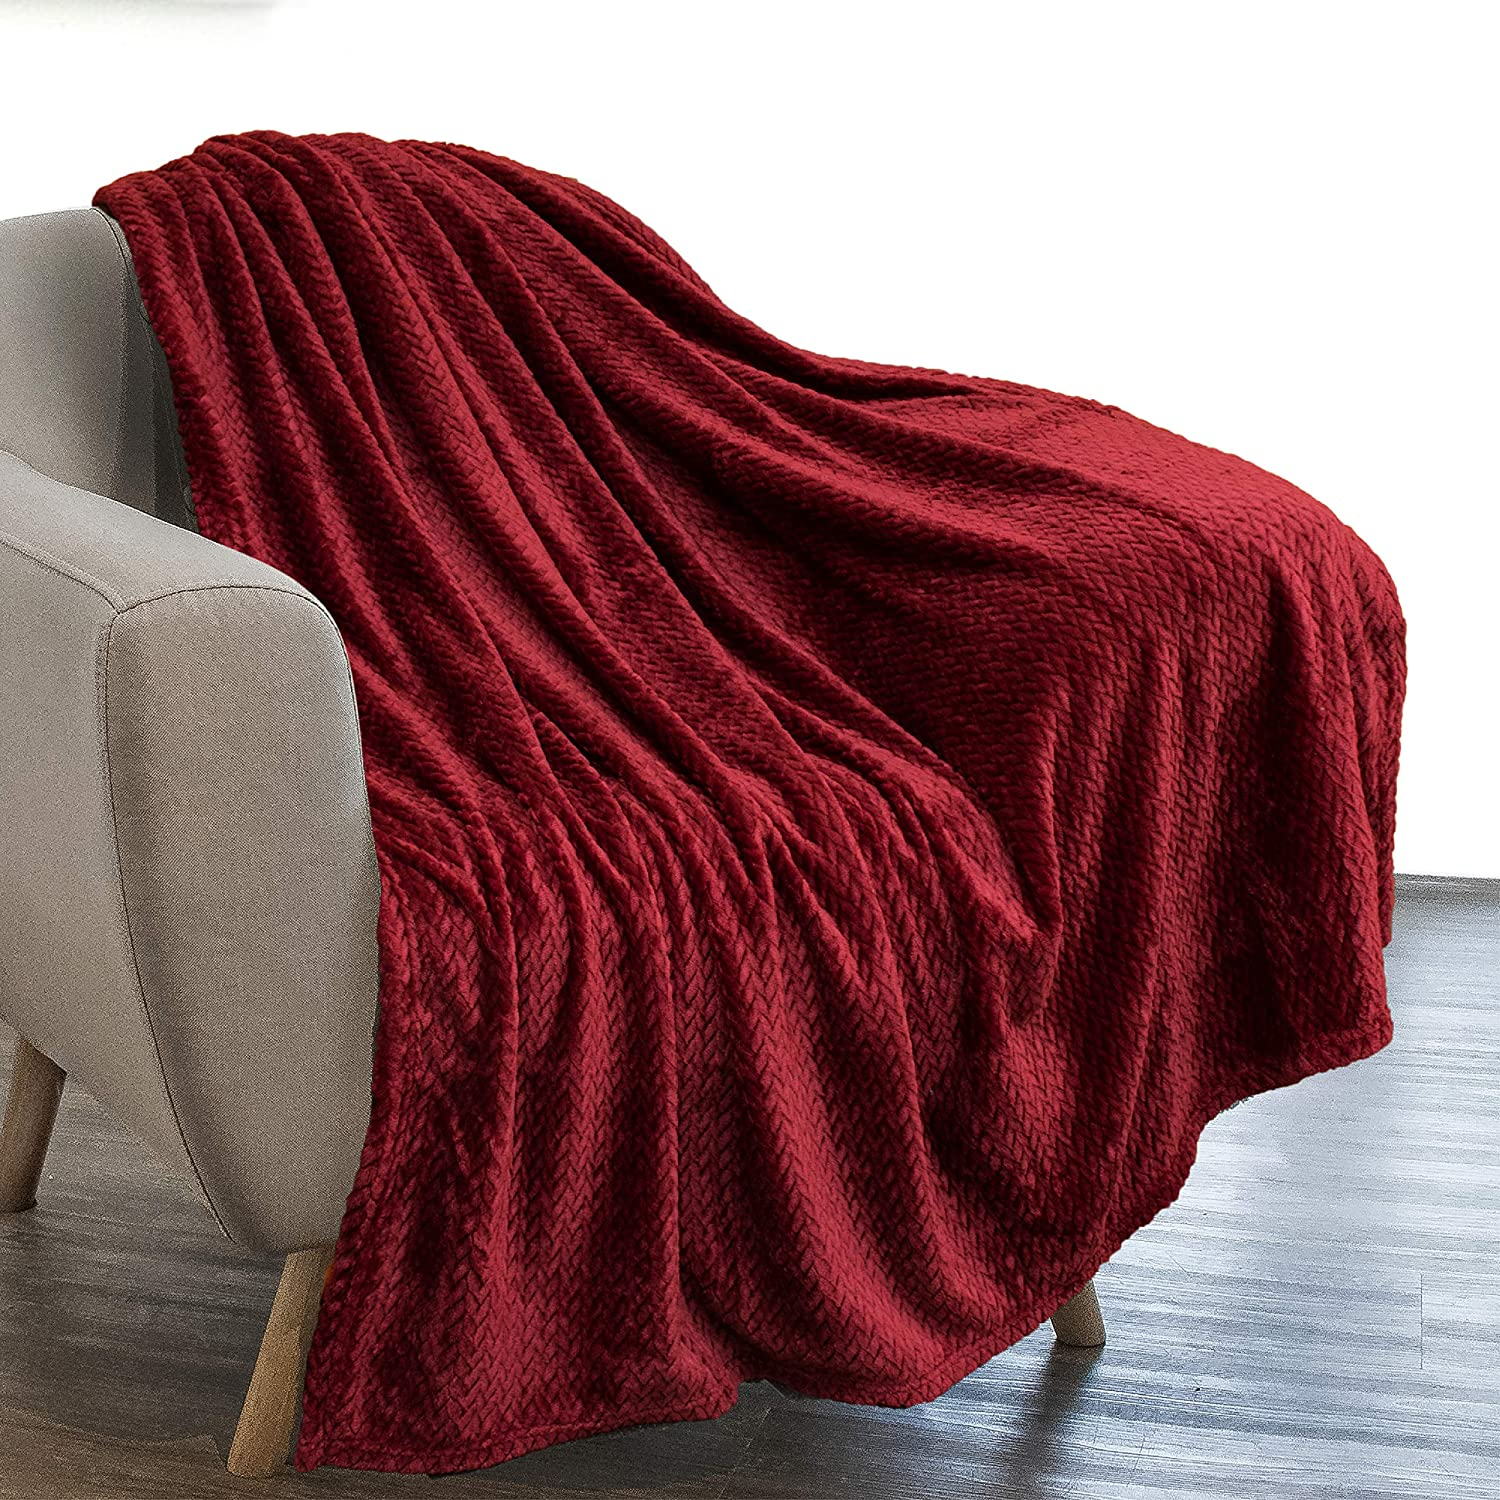 Manufacturer direct delivery PAVILIA Luxury Flannel Fleece Blanket Burgundy Max 45% OFF Throw Wine Red